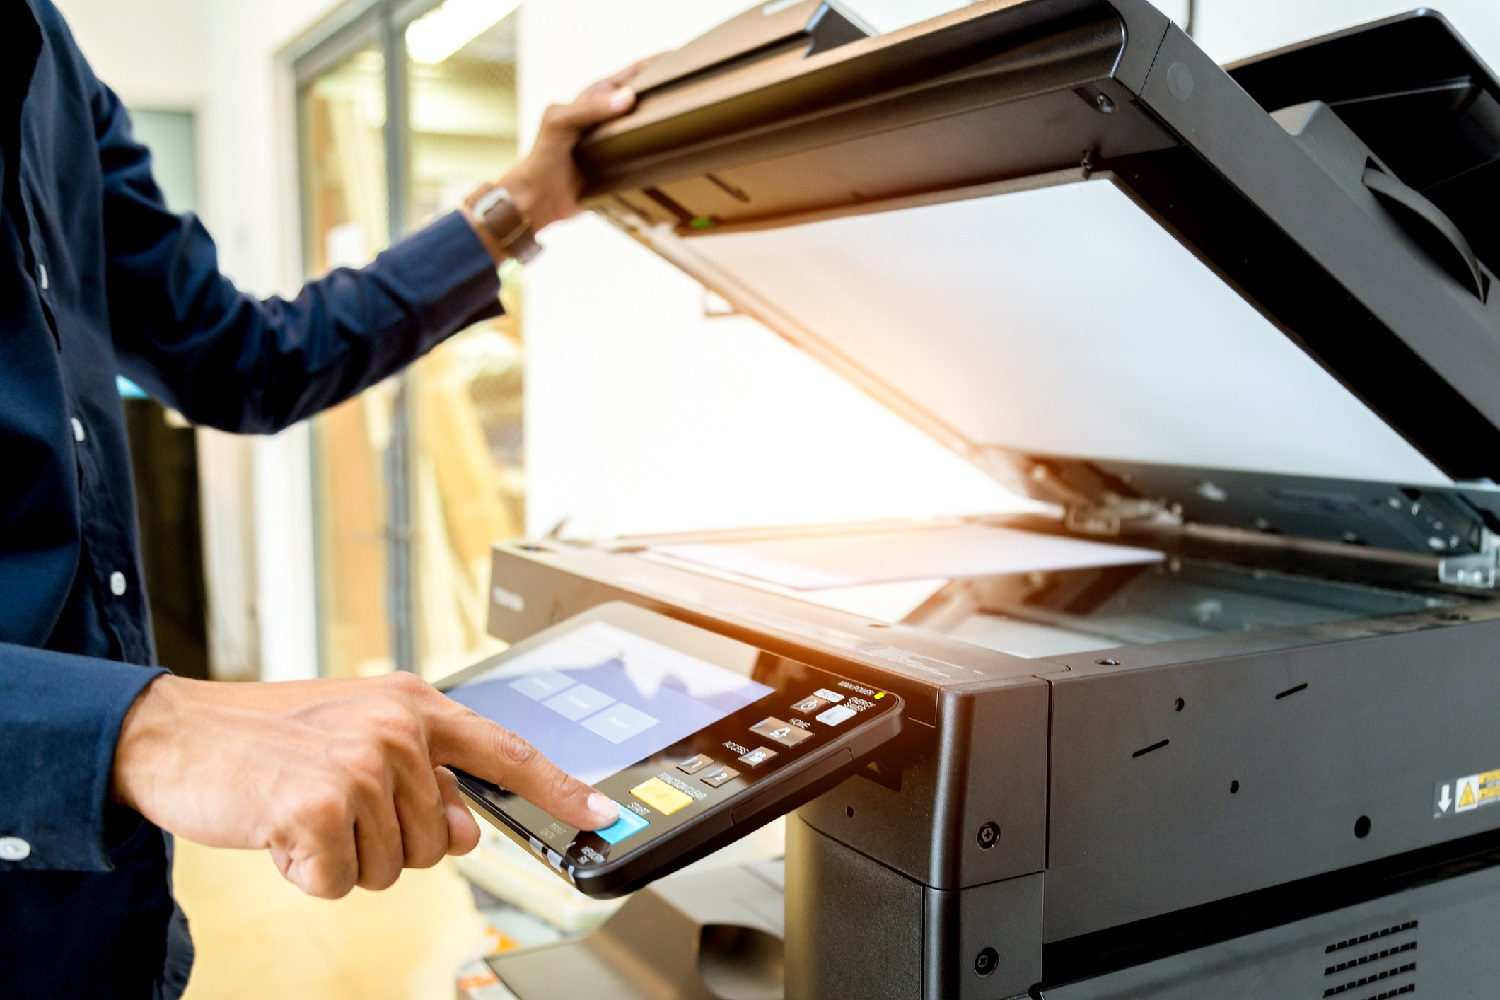 Printing/photocopy Business Entrepreneur